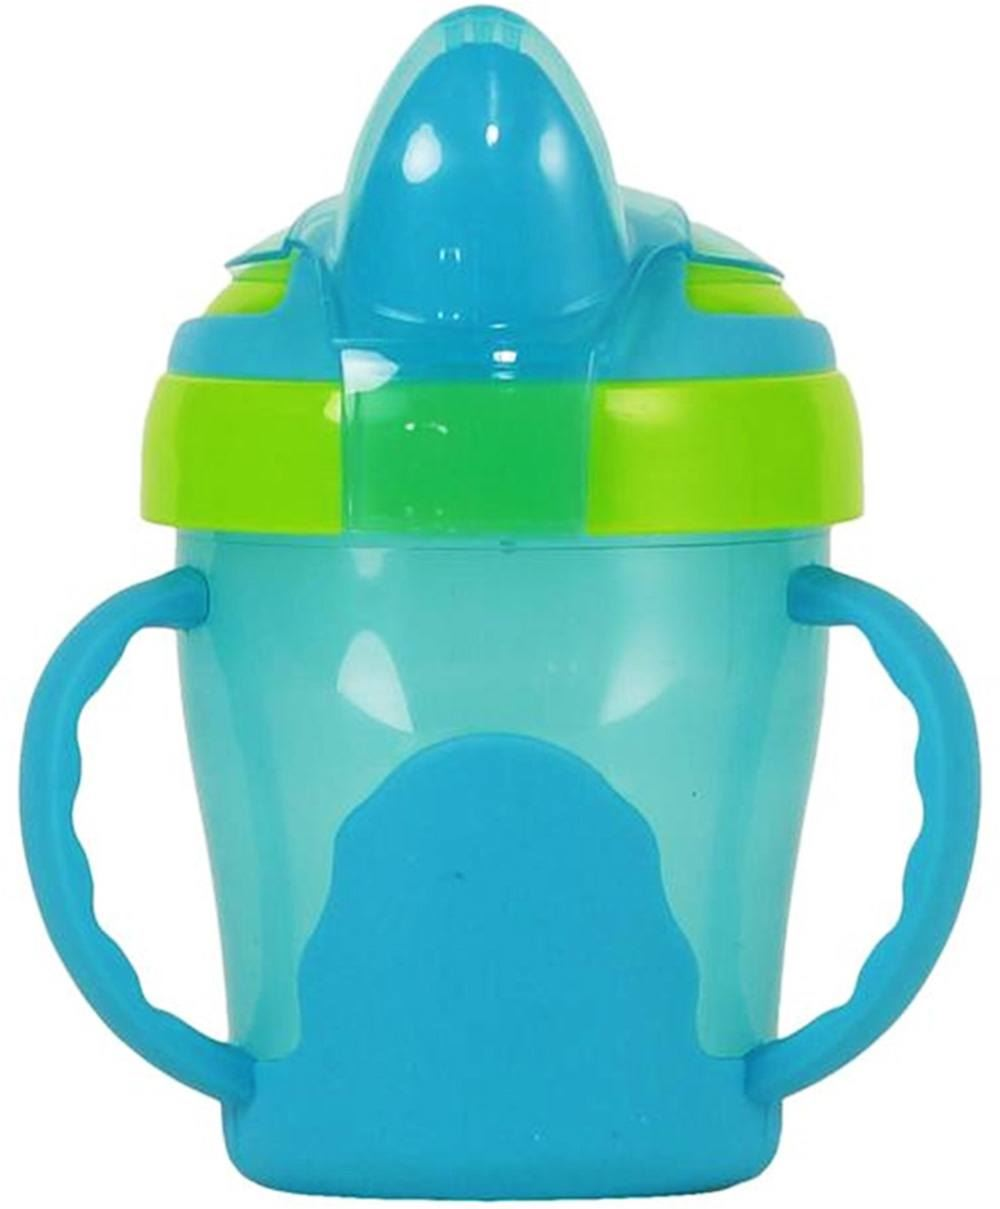 Vital-Baby-SOFT-SPOUT-TRAINER-CUP-200ml-With-Handles-Baby-Toddler-Feeding-BNIB